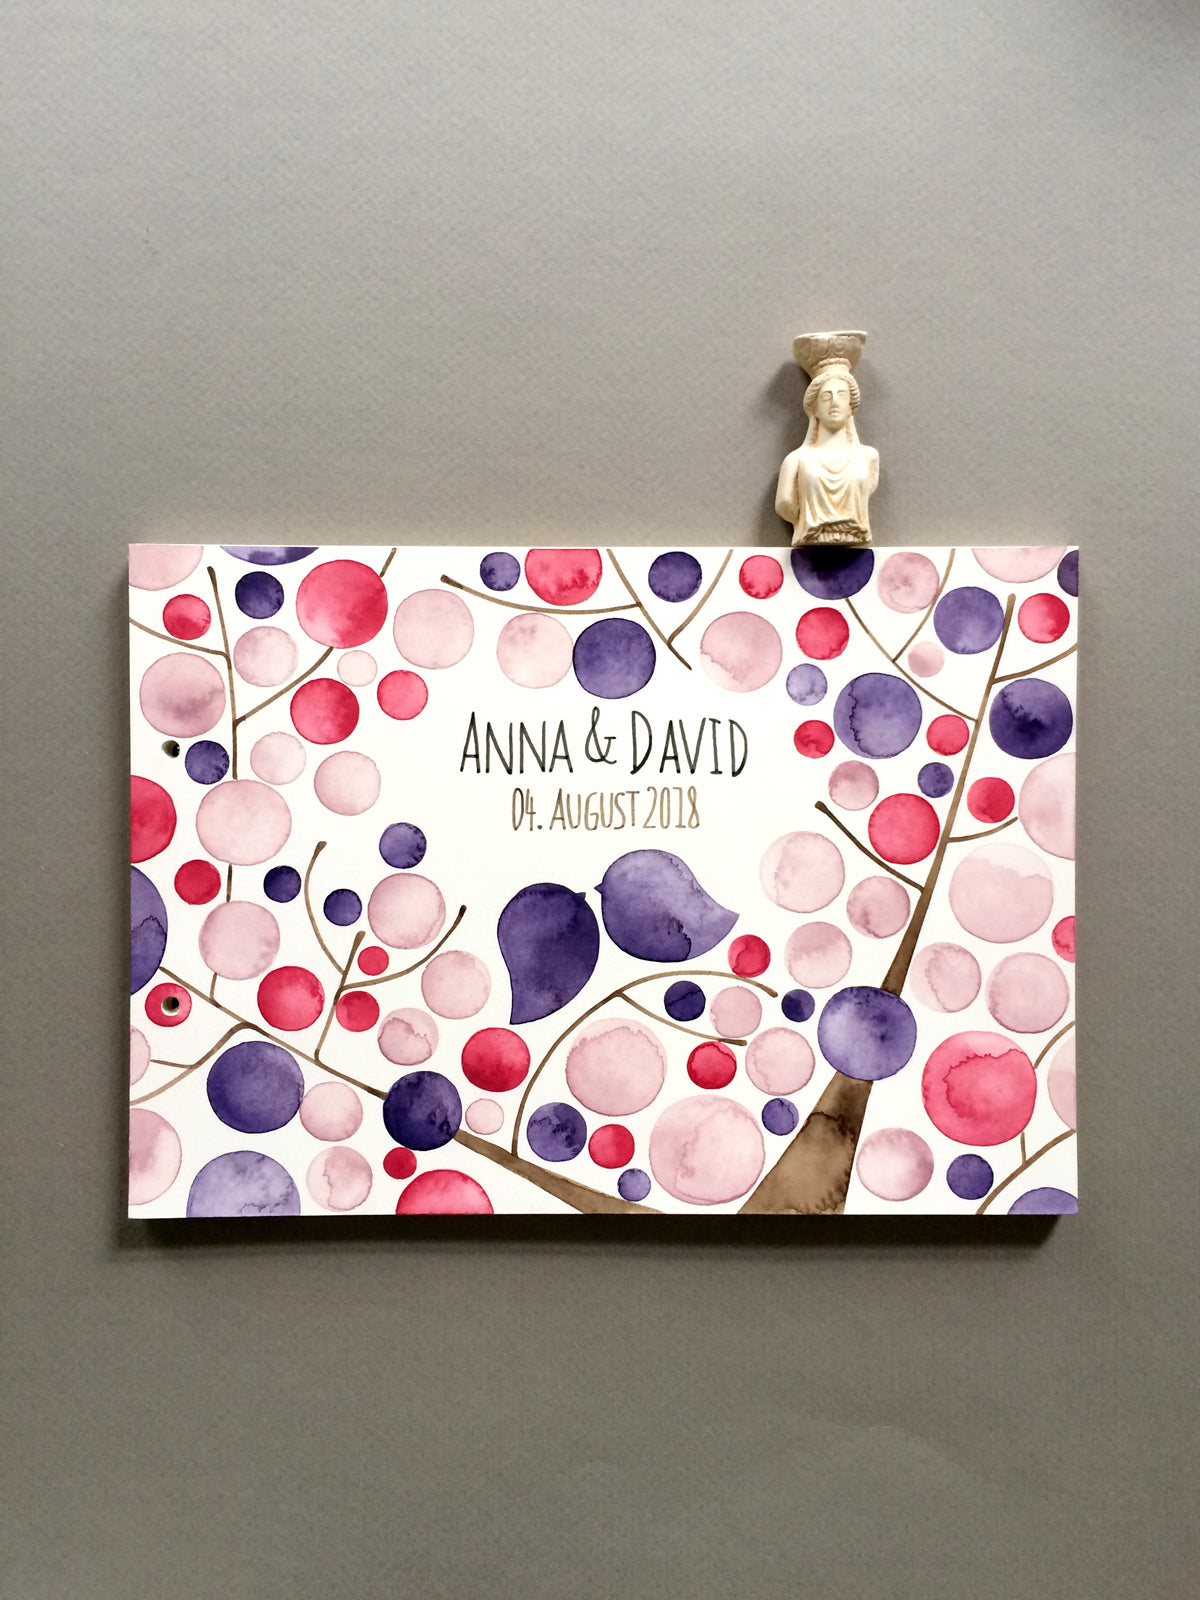 Jewel watercolor painted Wedding album